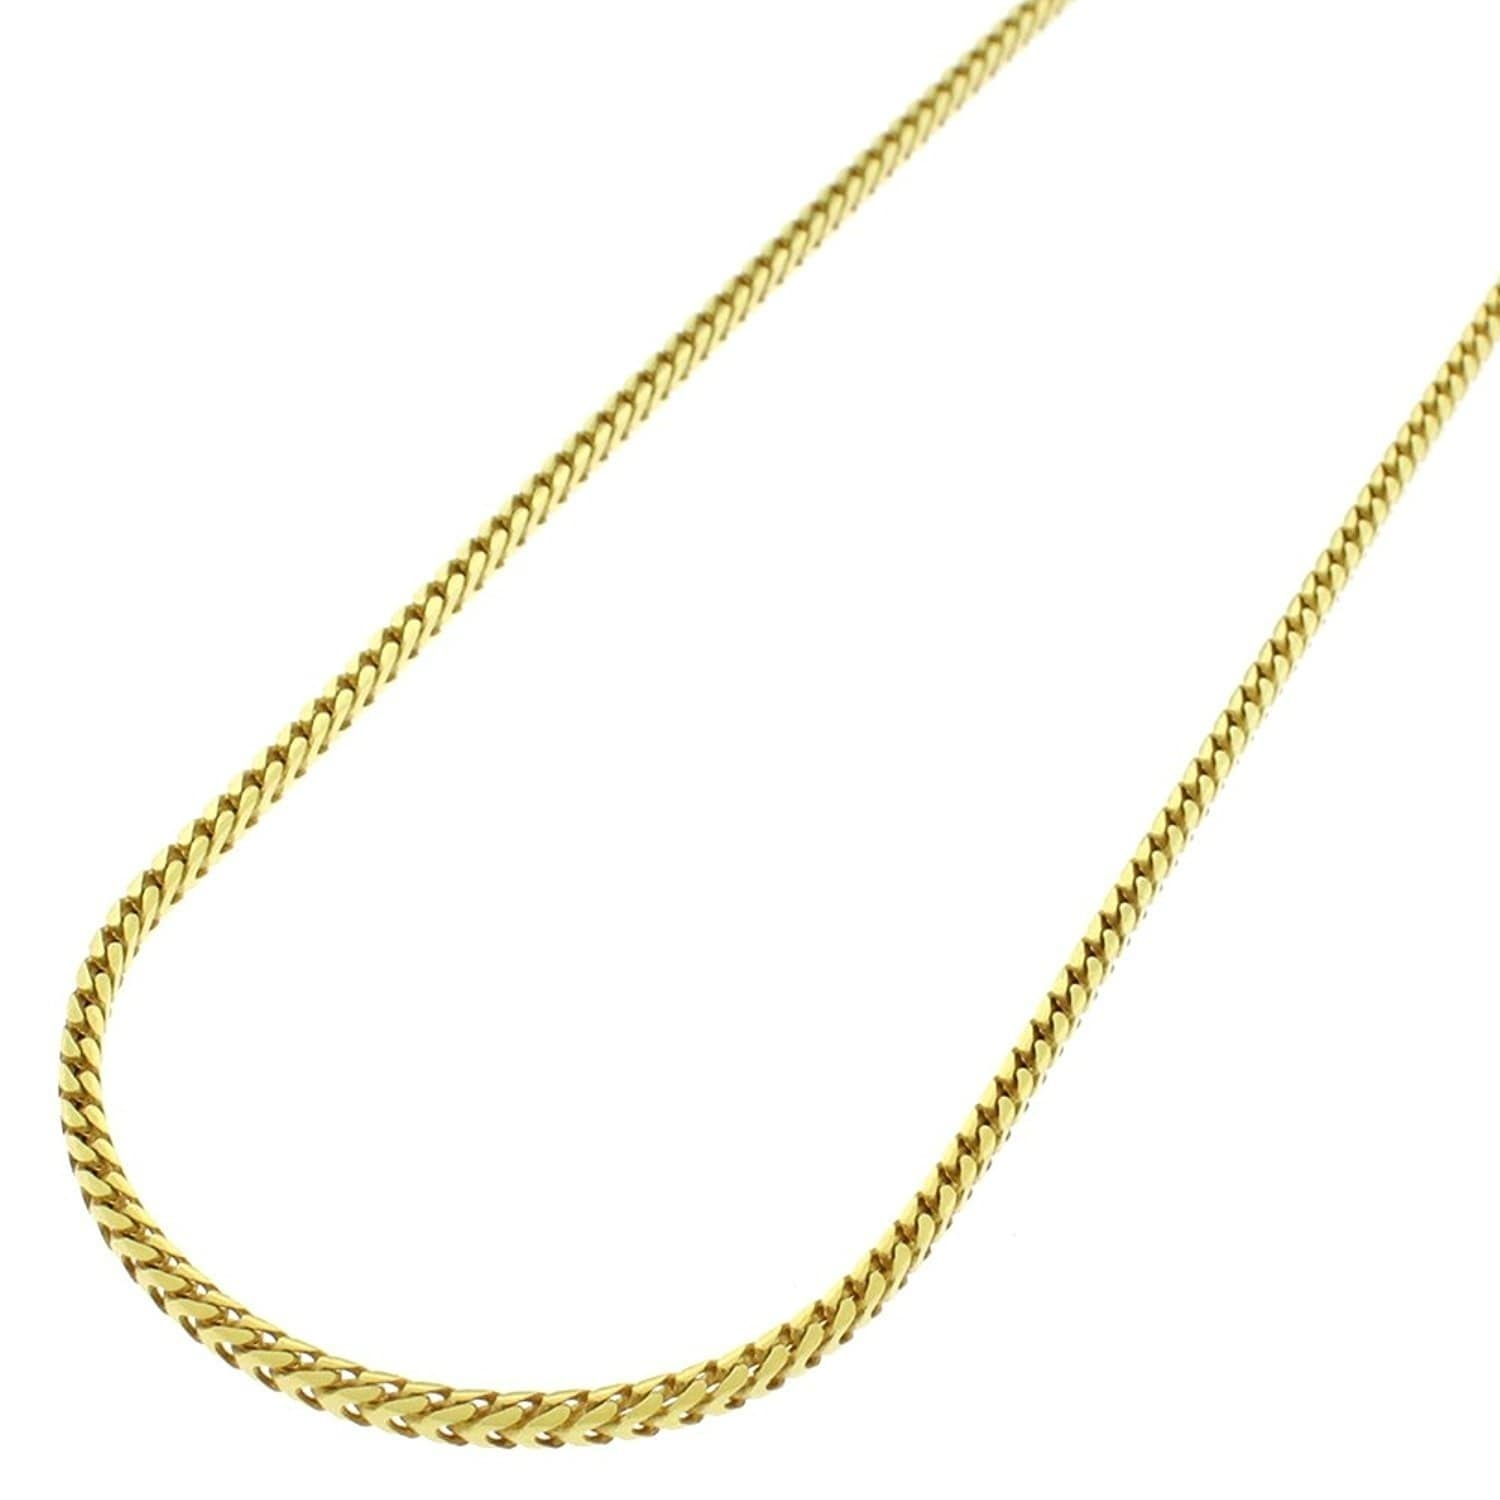 Pure 1mm 925 Sterling Silver Italian Square Snake Chain Necklace made in italy